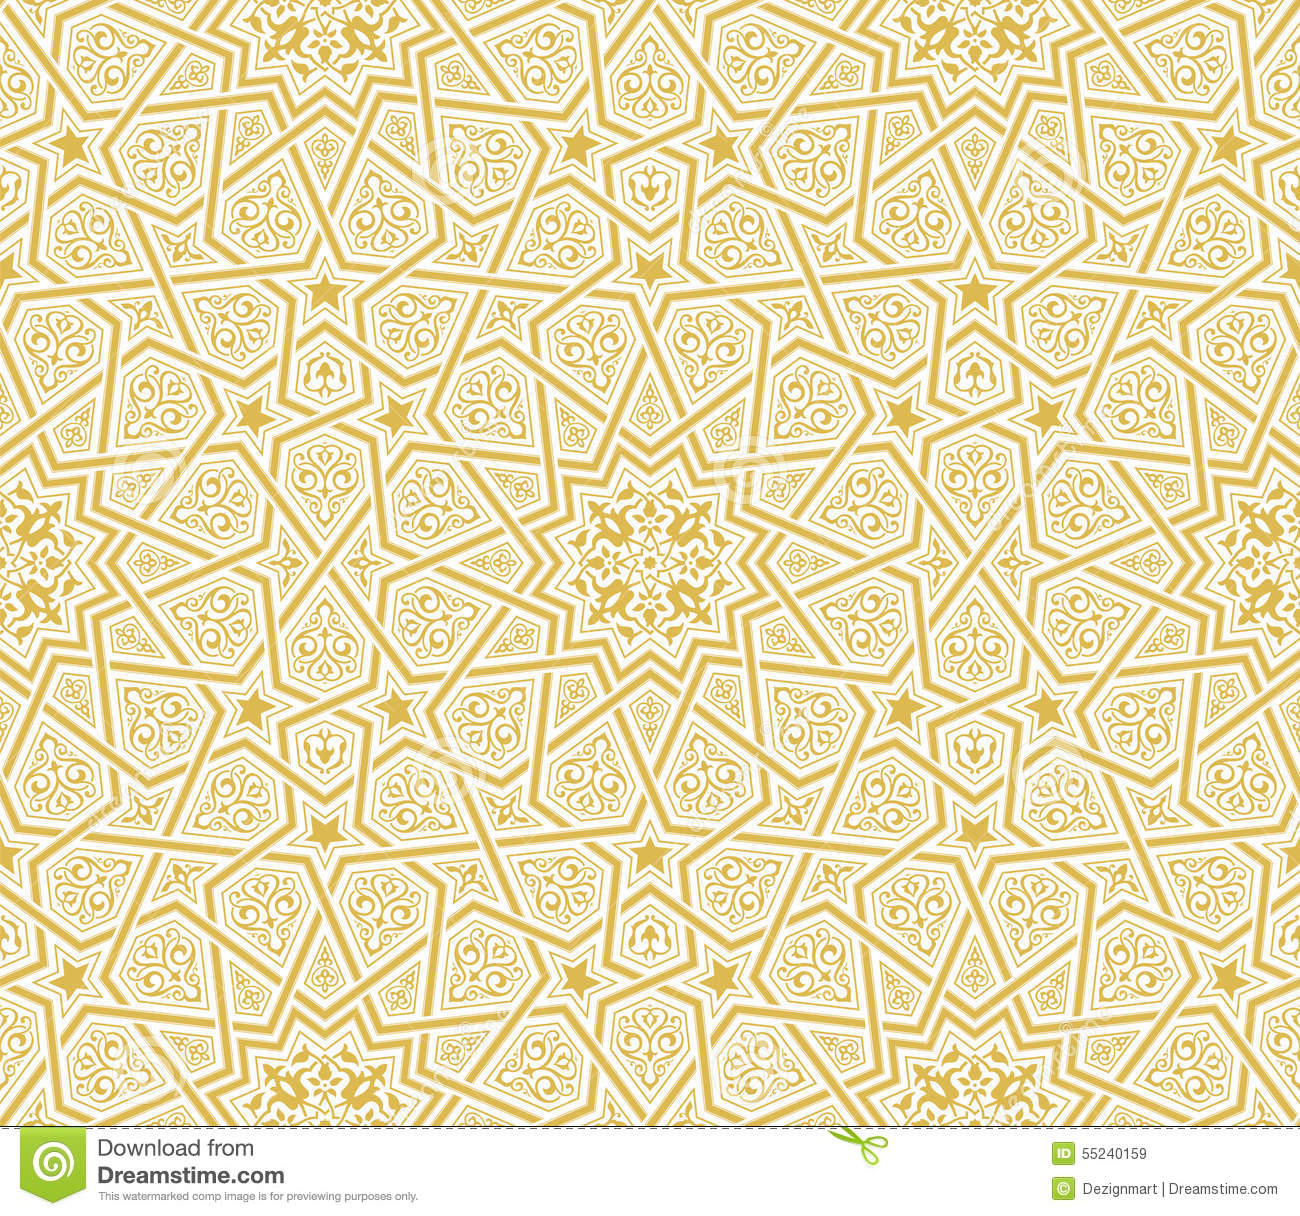 Islamic Star Ornament Golden Background Stock Vector - Image: 55240159